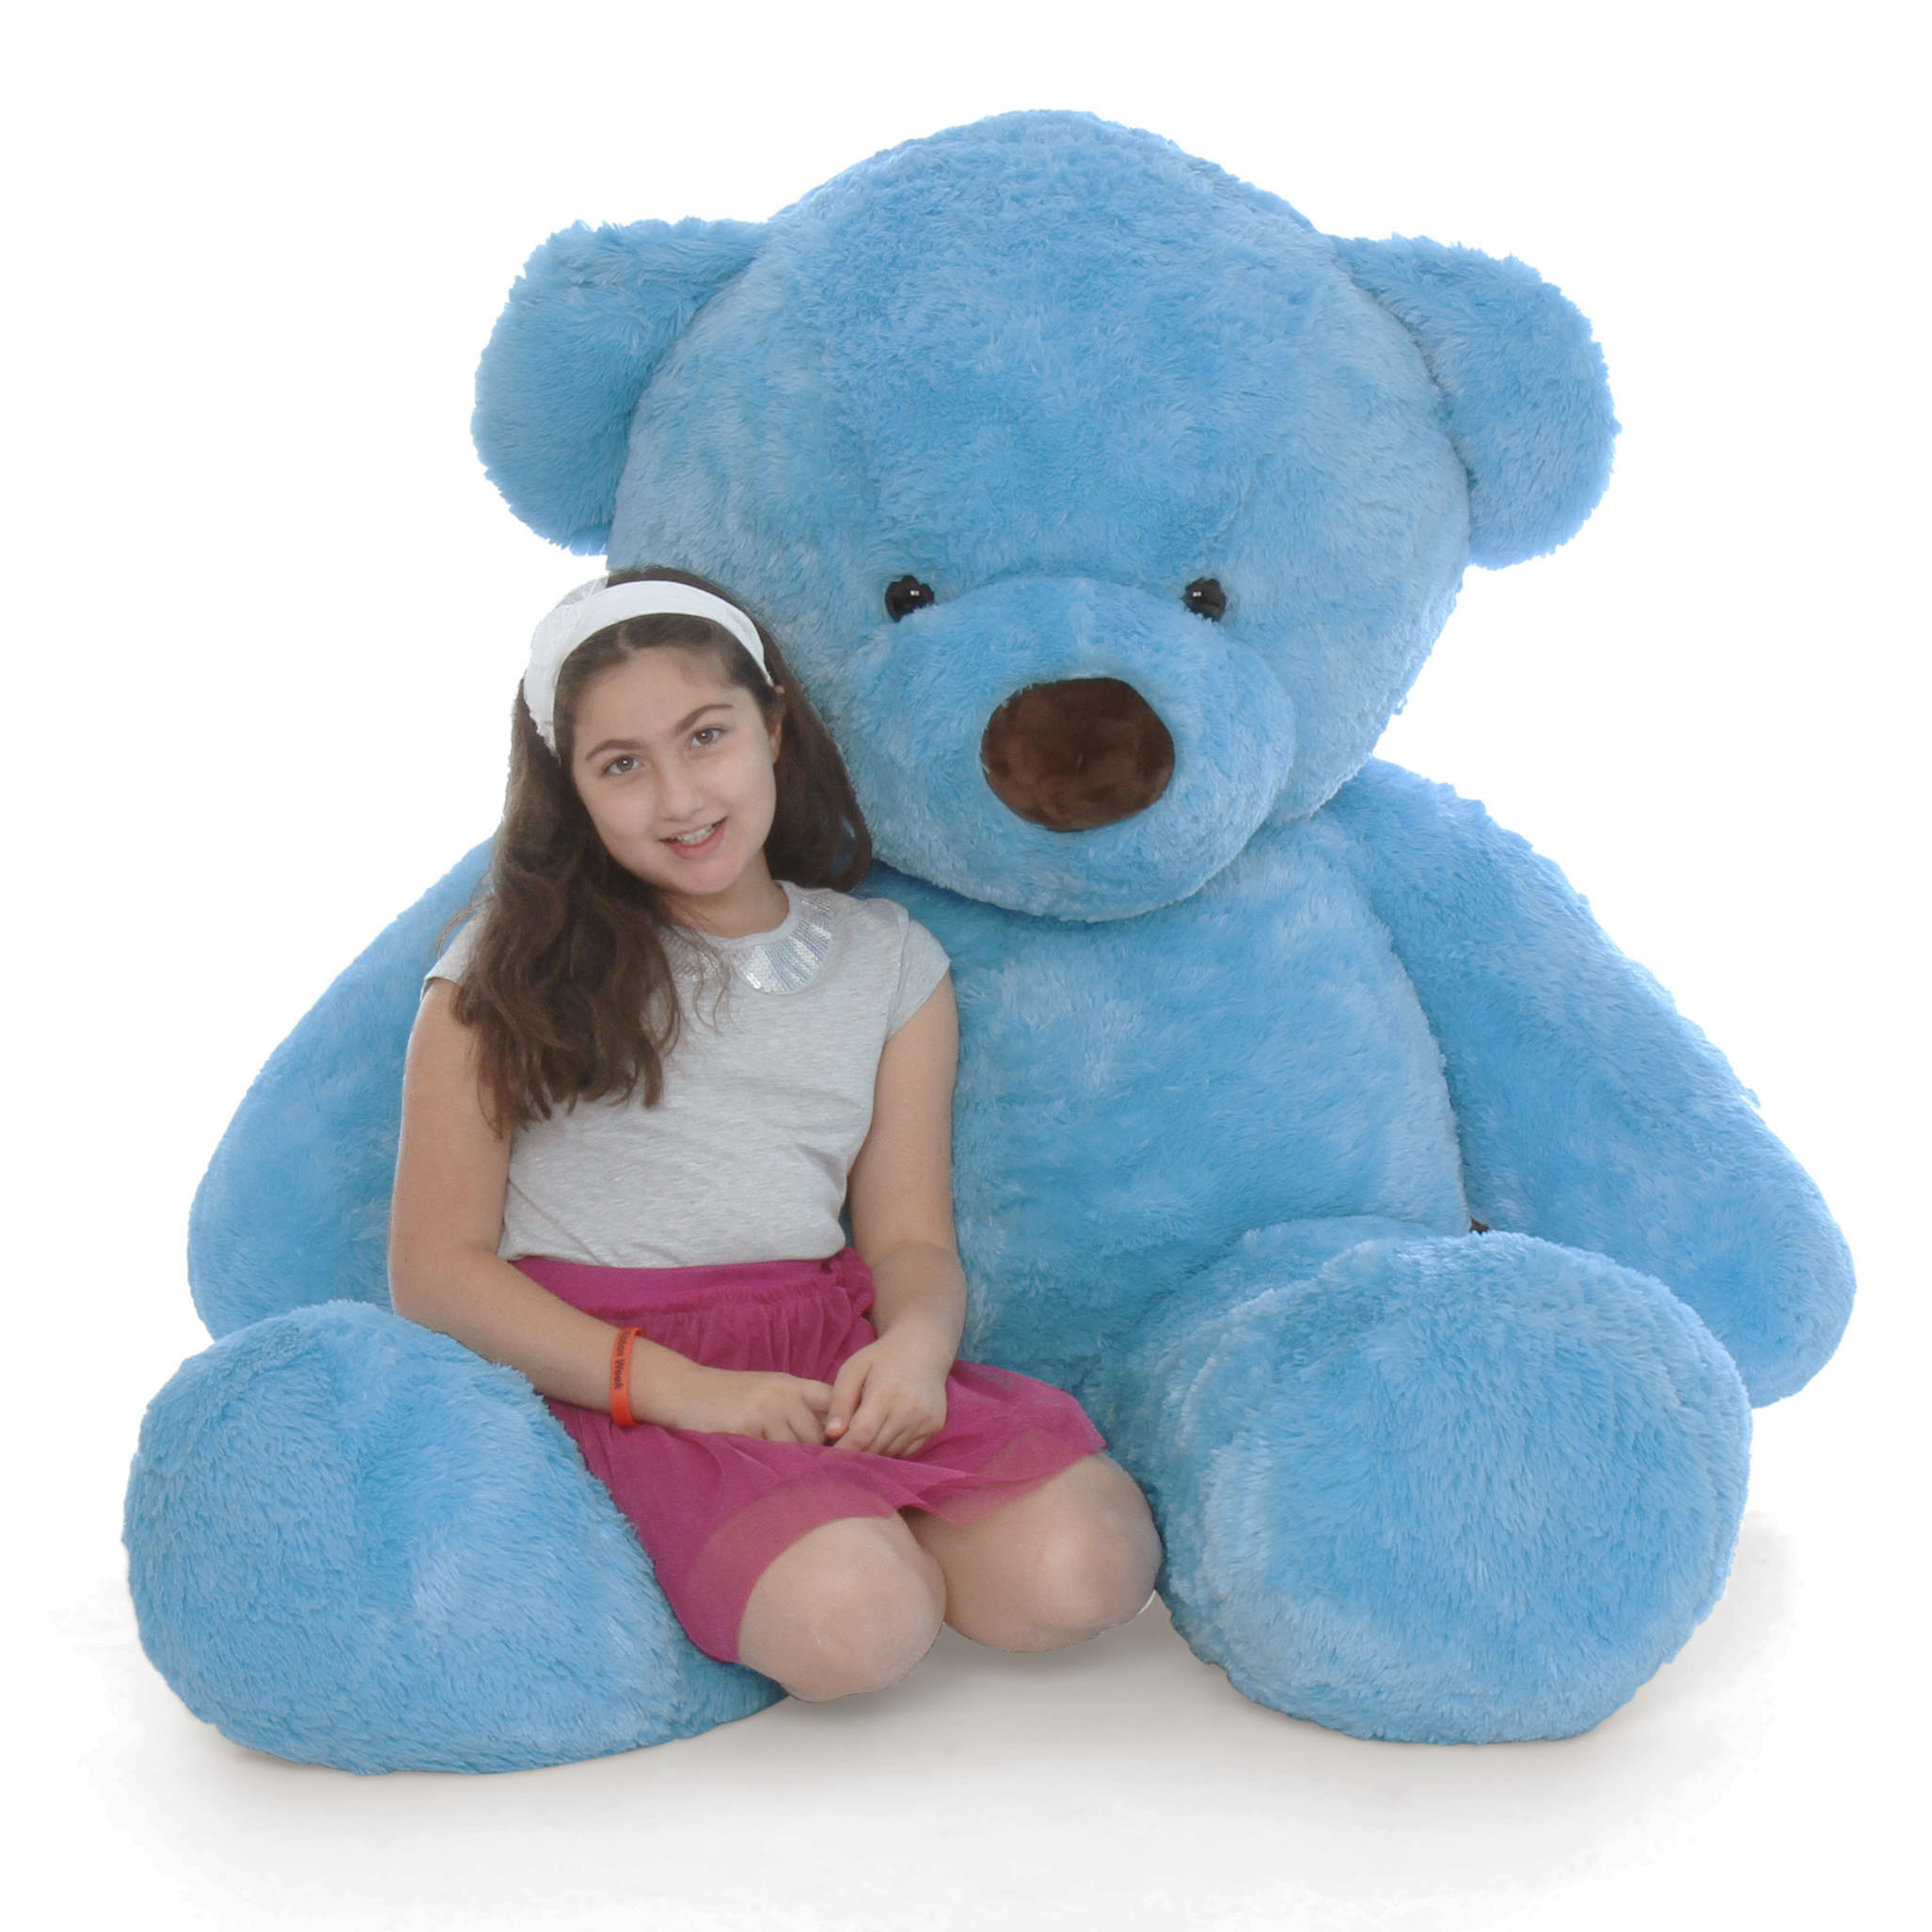 big-blue-teddy-bear-sammy-chubs-72in.jpg